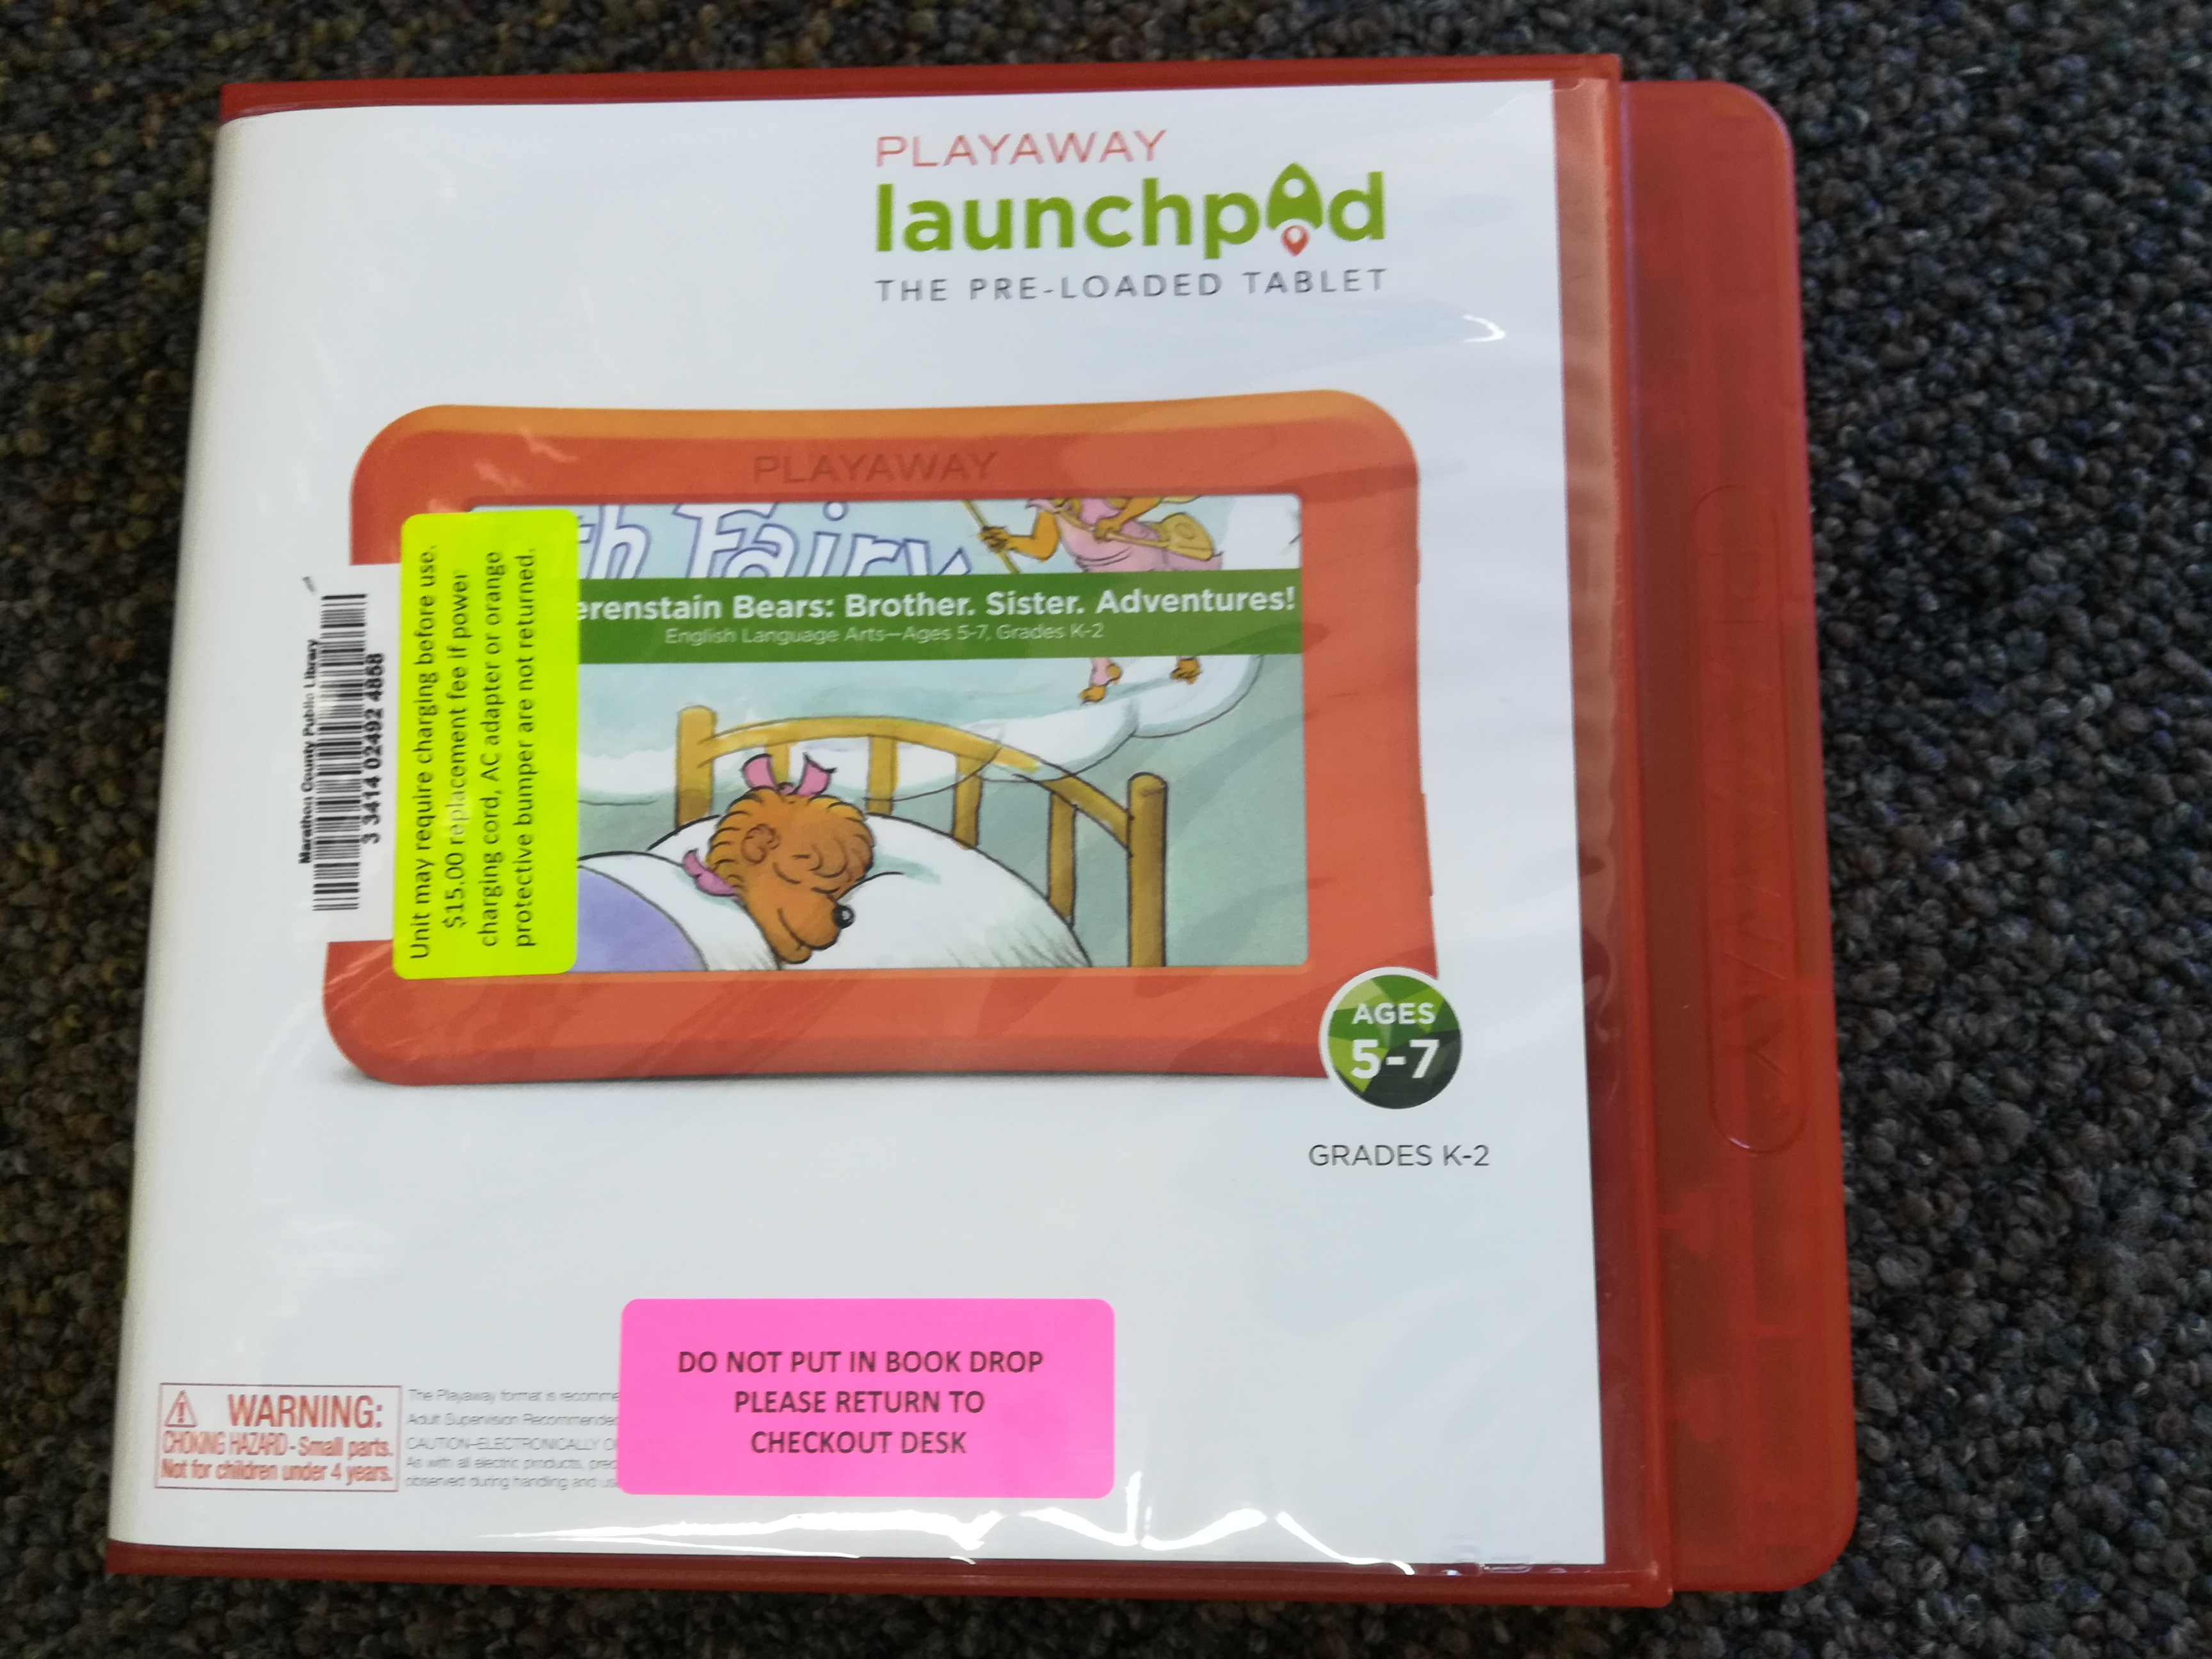 Berenstain Bears Playaway Launchpad